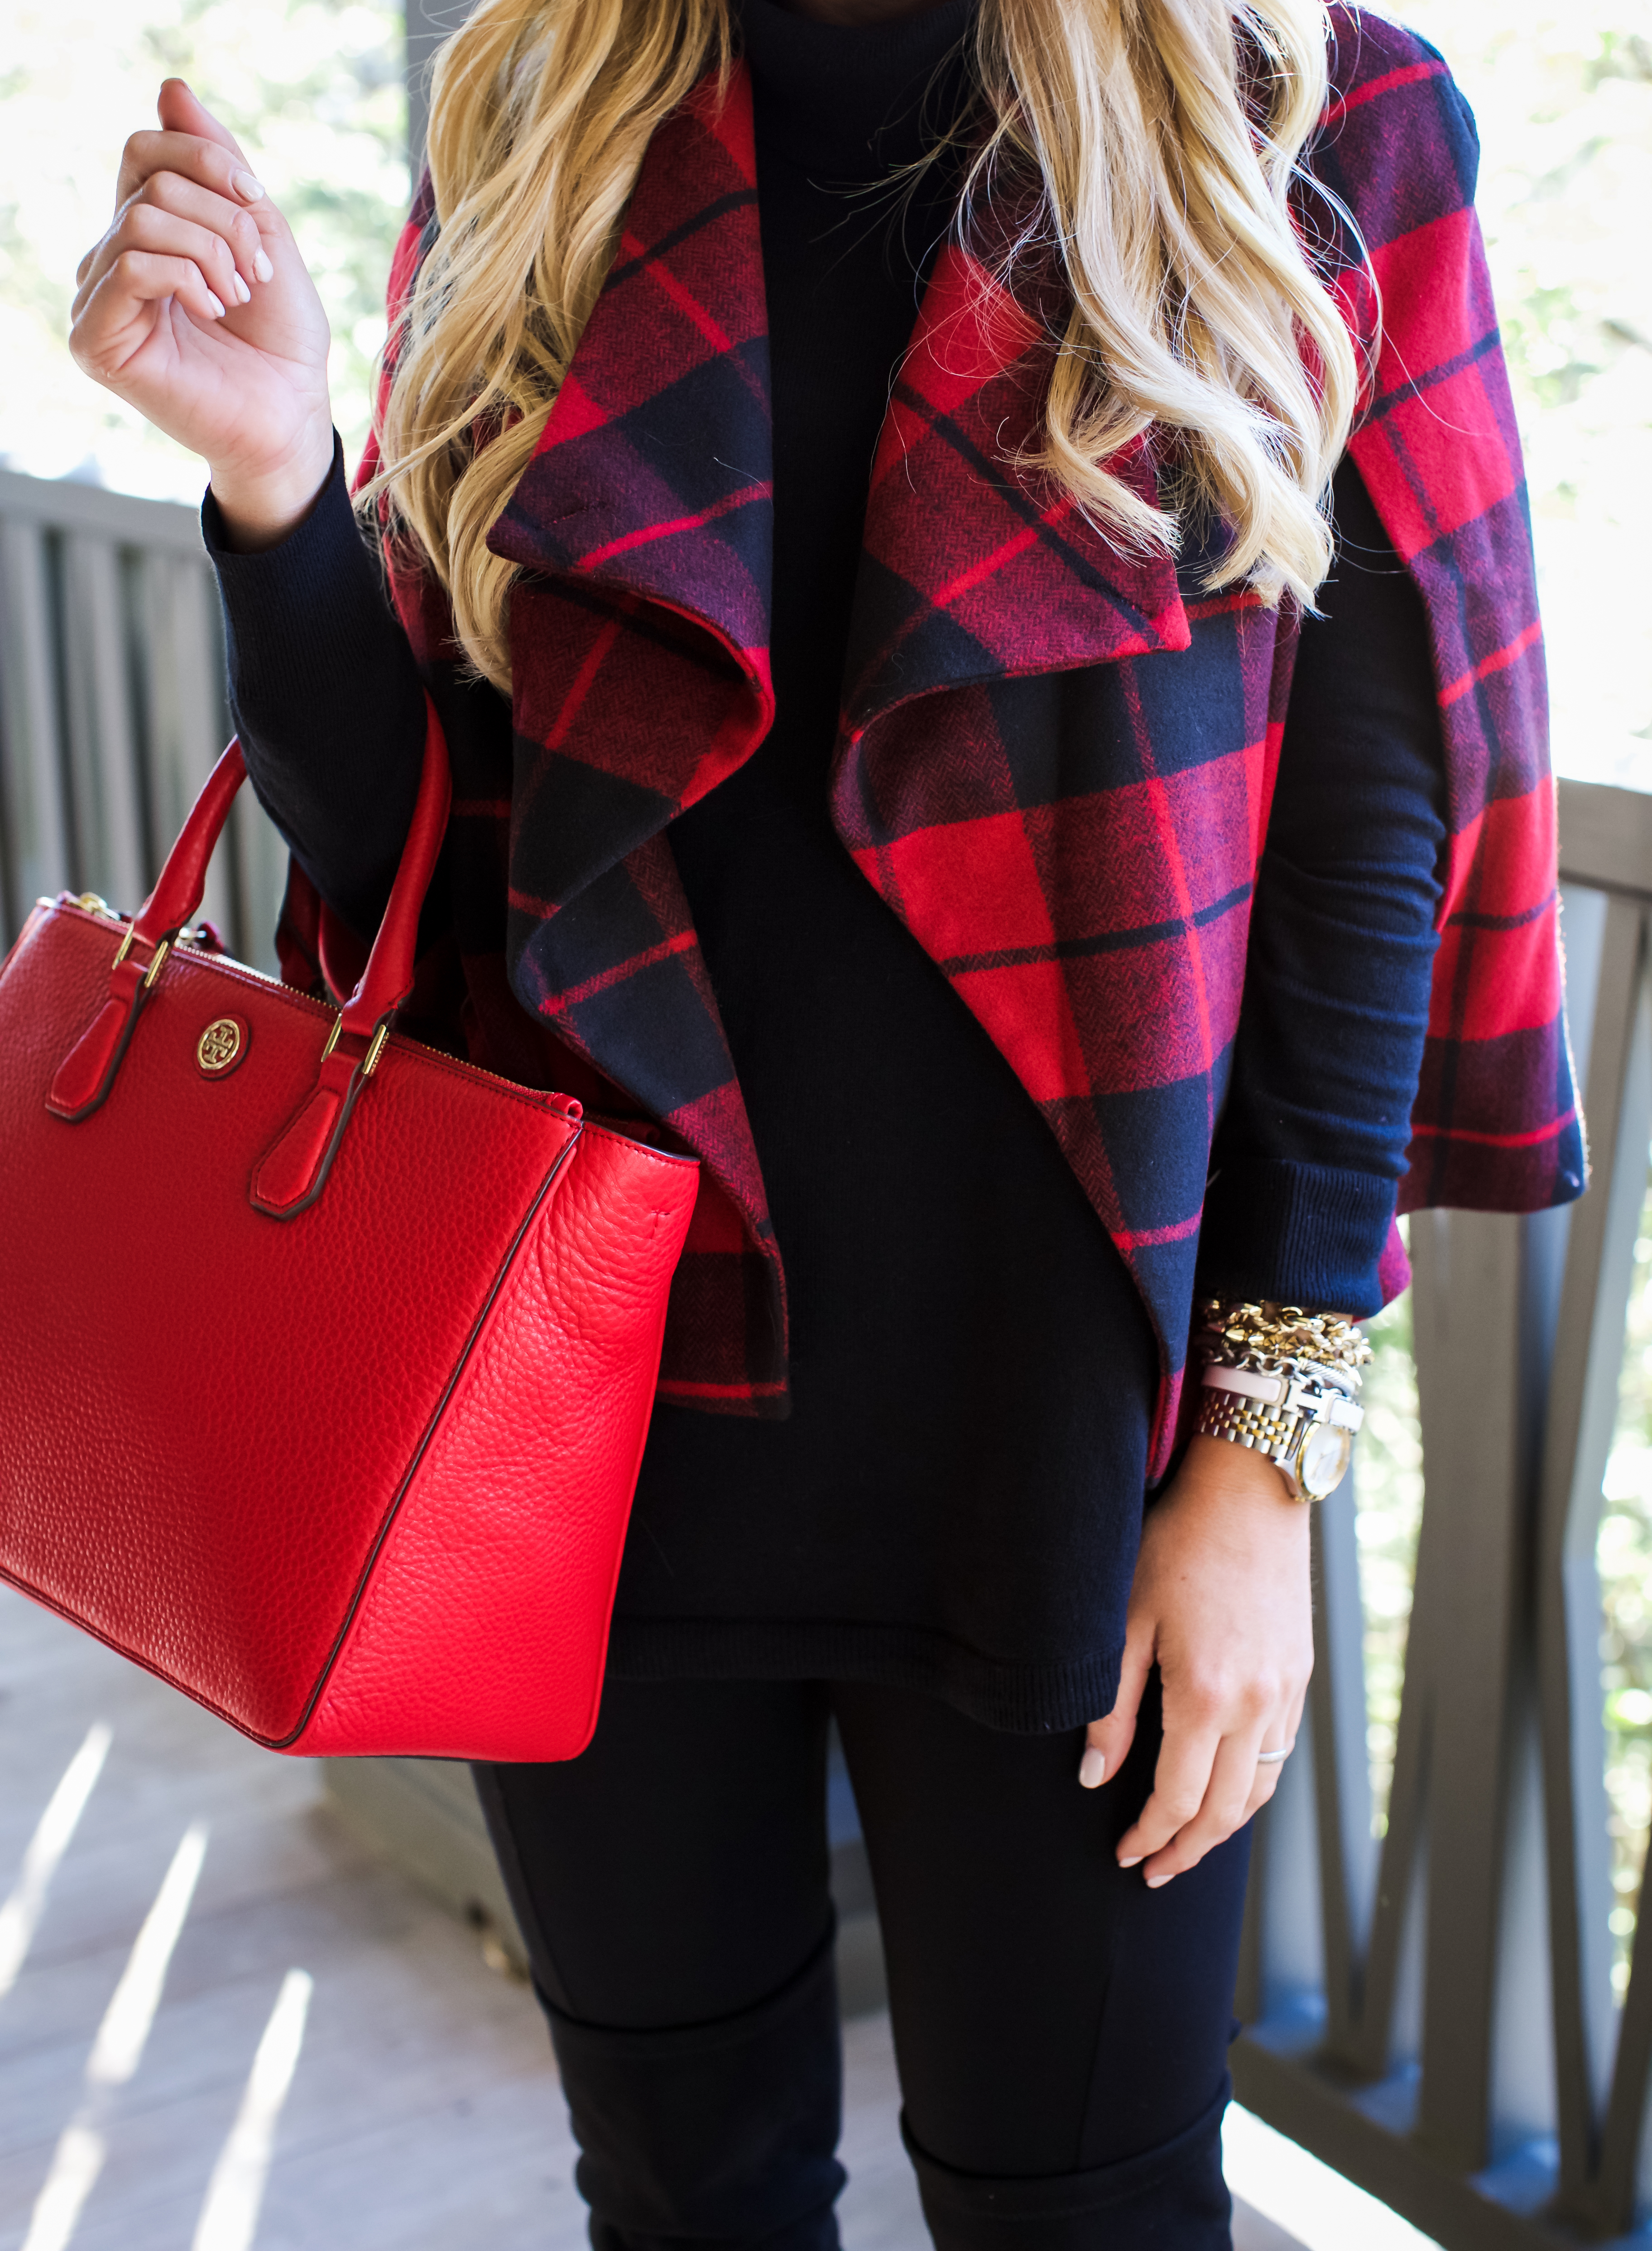 Outfit | Buffalo Plaid Jacket - SHOP DANDY | A florida based style and beauty blog by Danielle